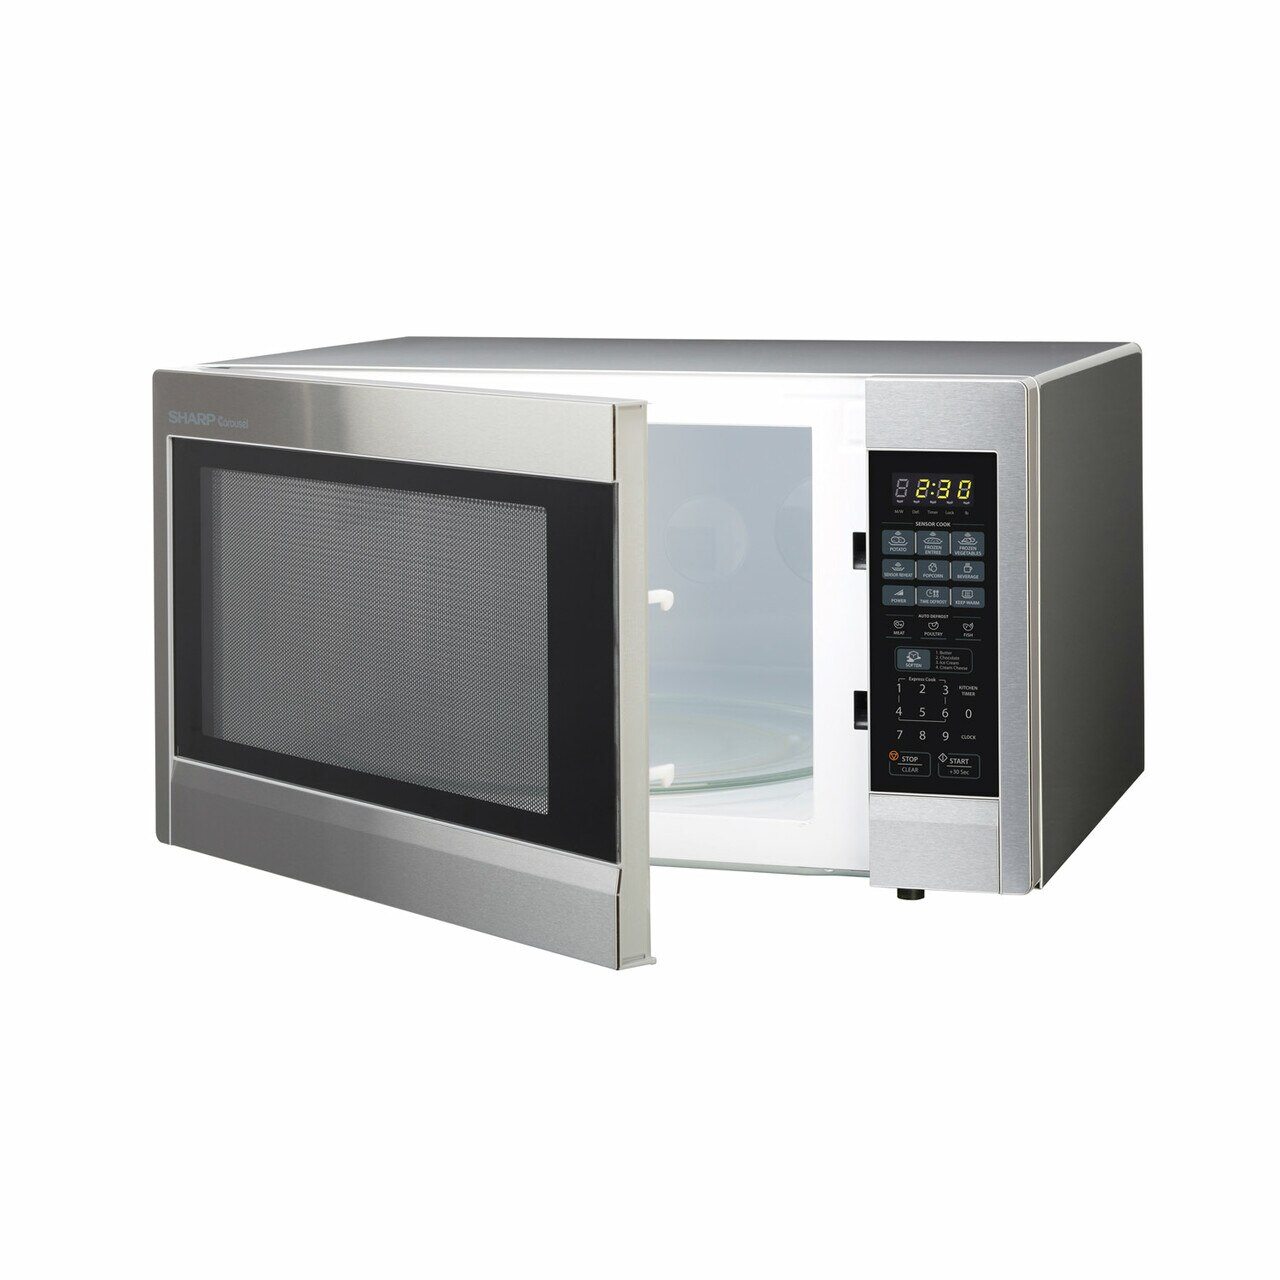 2.2 cu. ft. Stainless Steel Countertop Microwave (R651ZS) – left angle view with door open